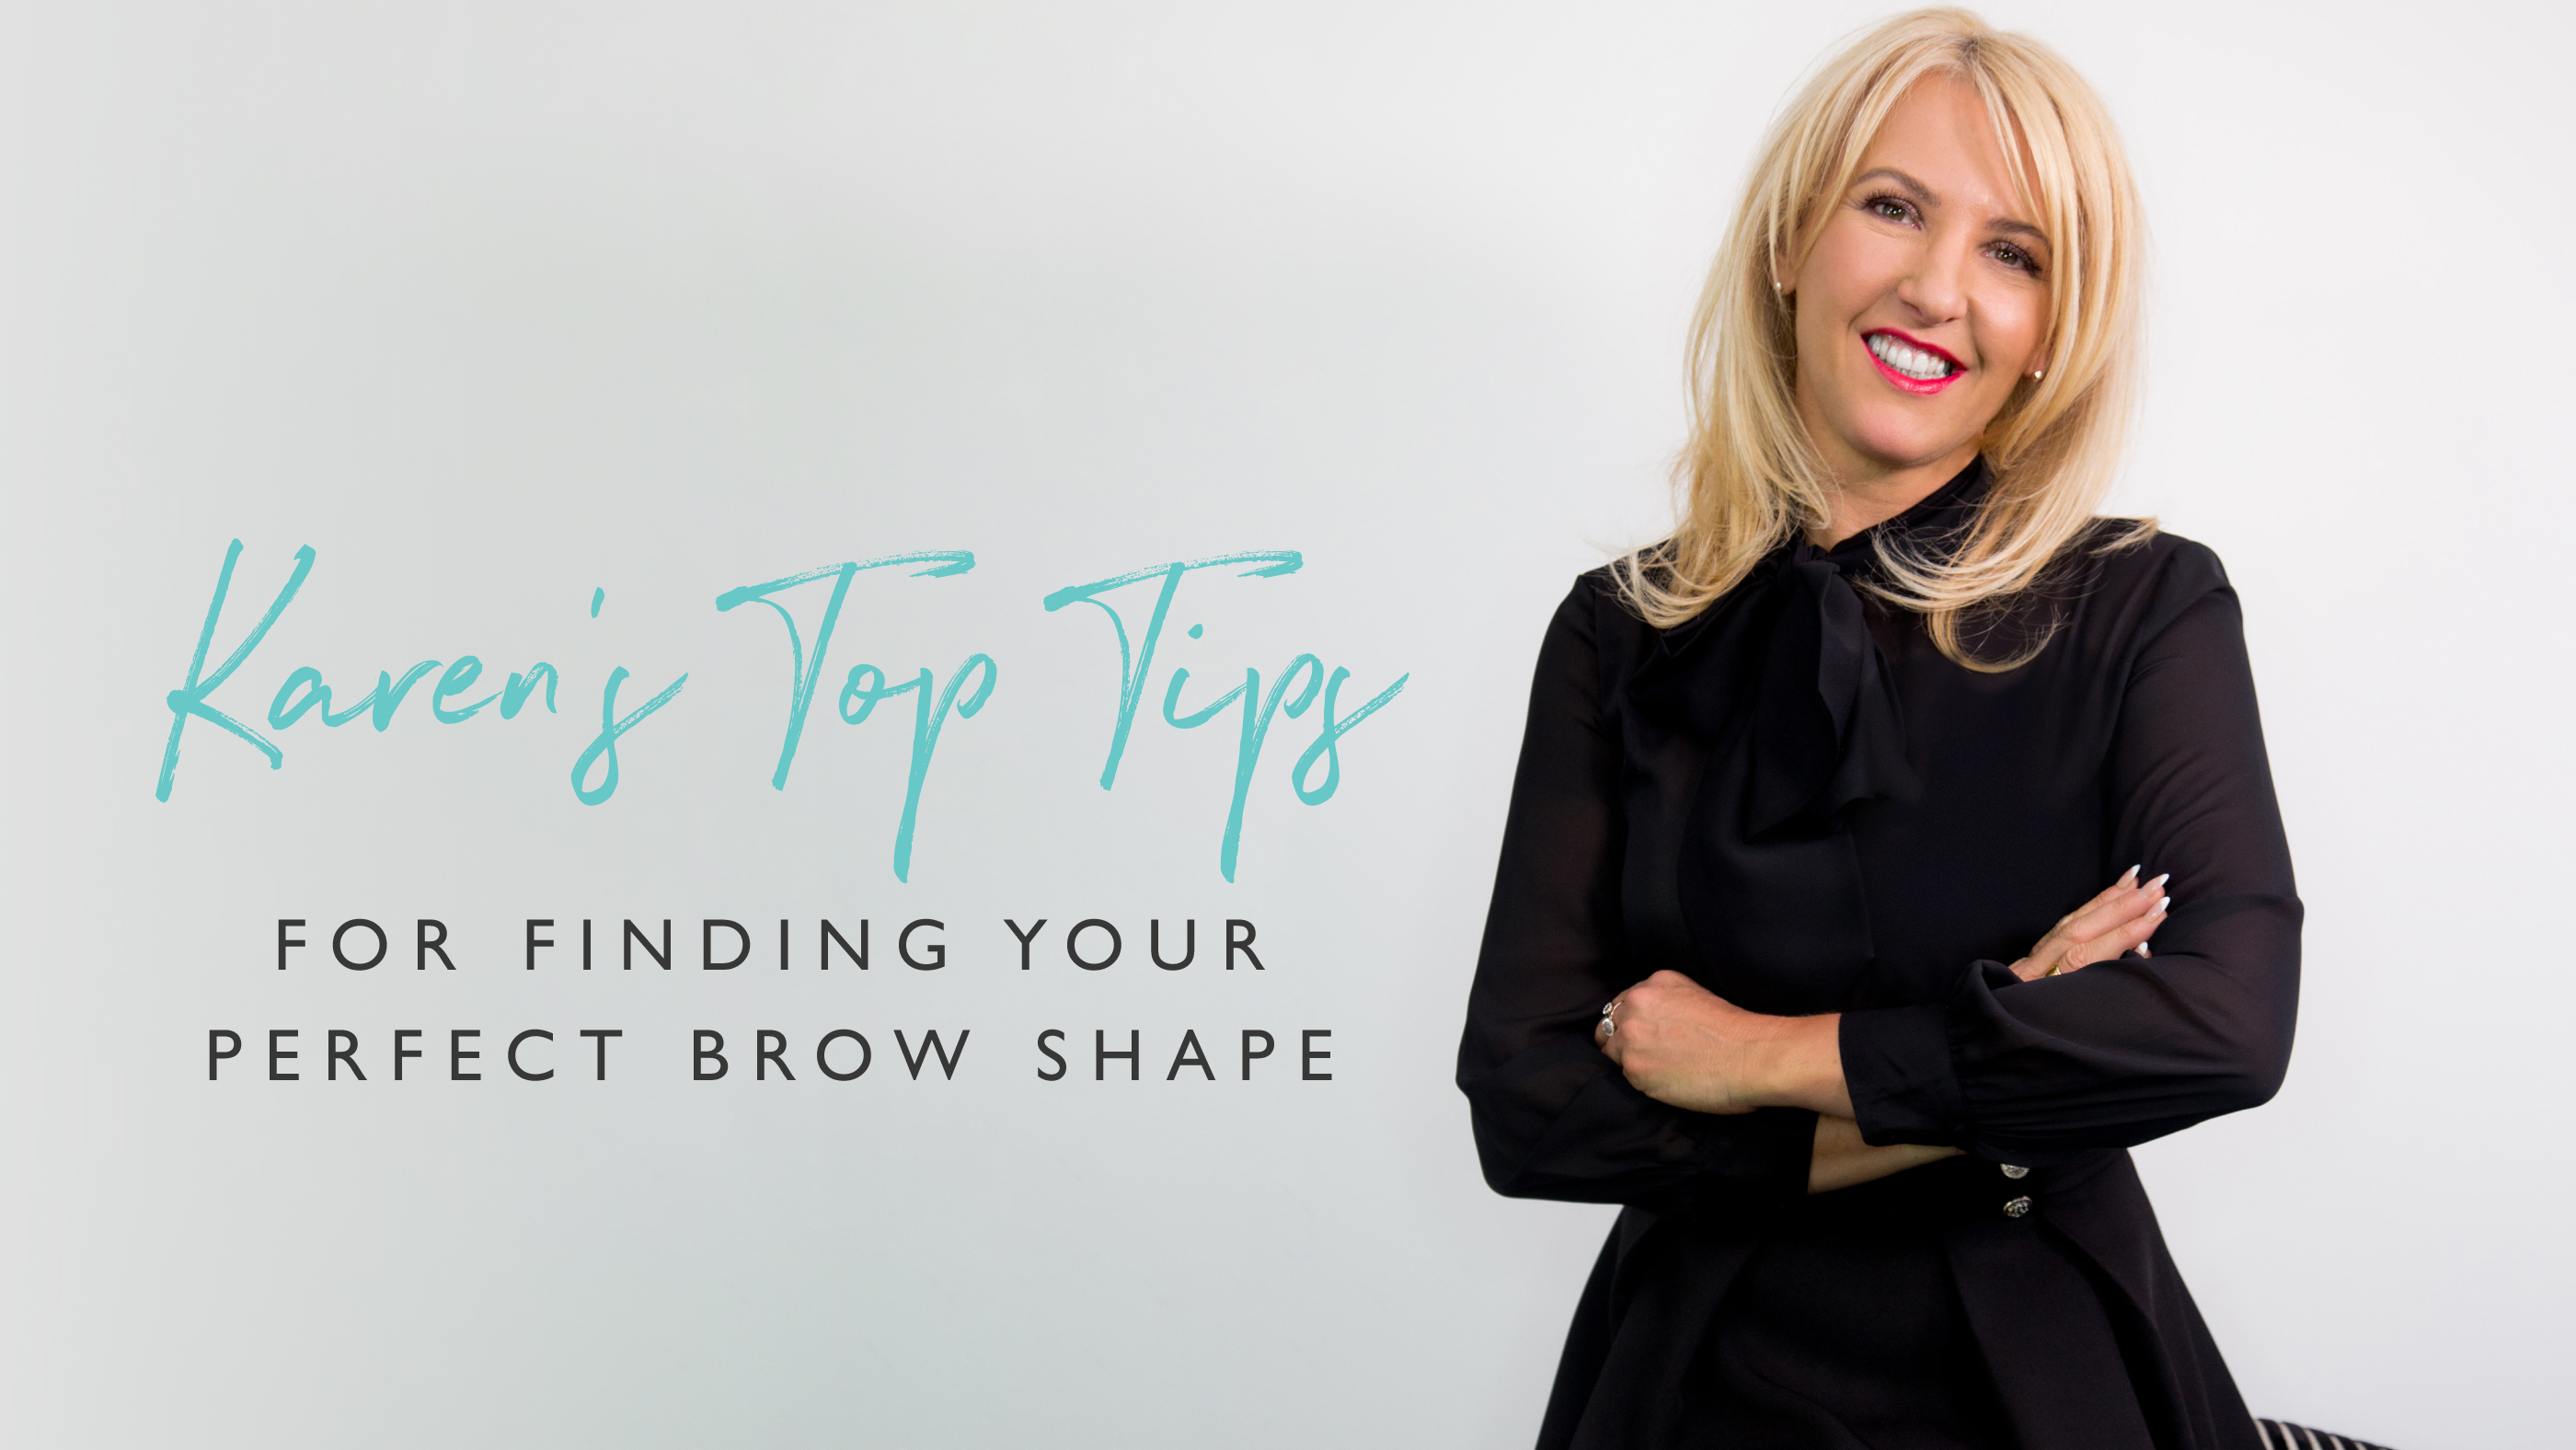 Karen's Top Tips: Finding the perfect brow shape for your face shape